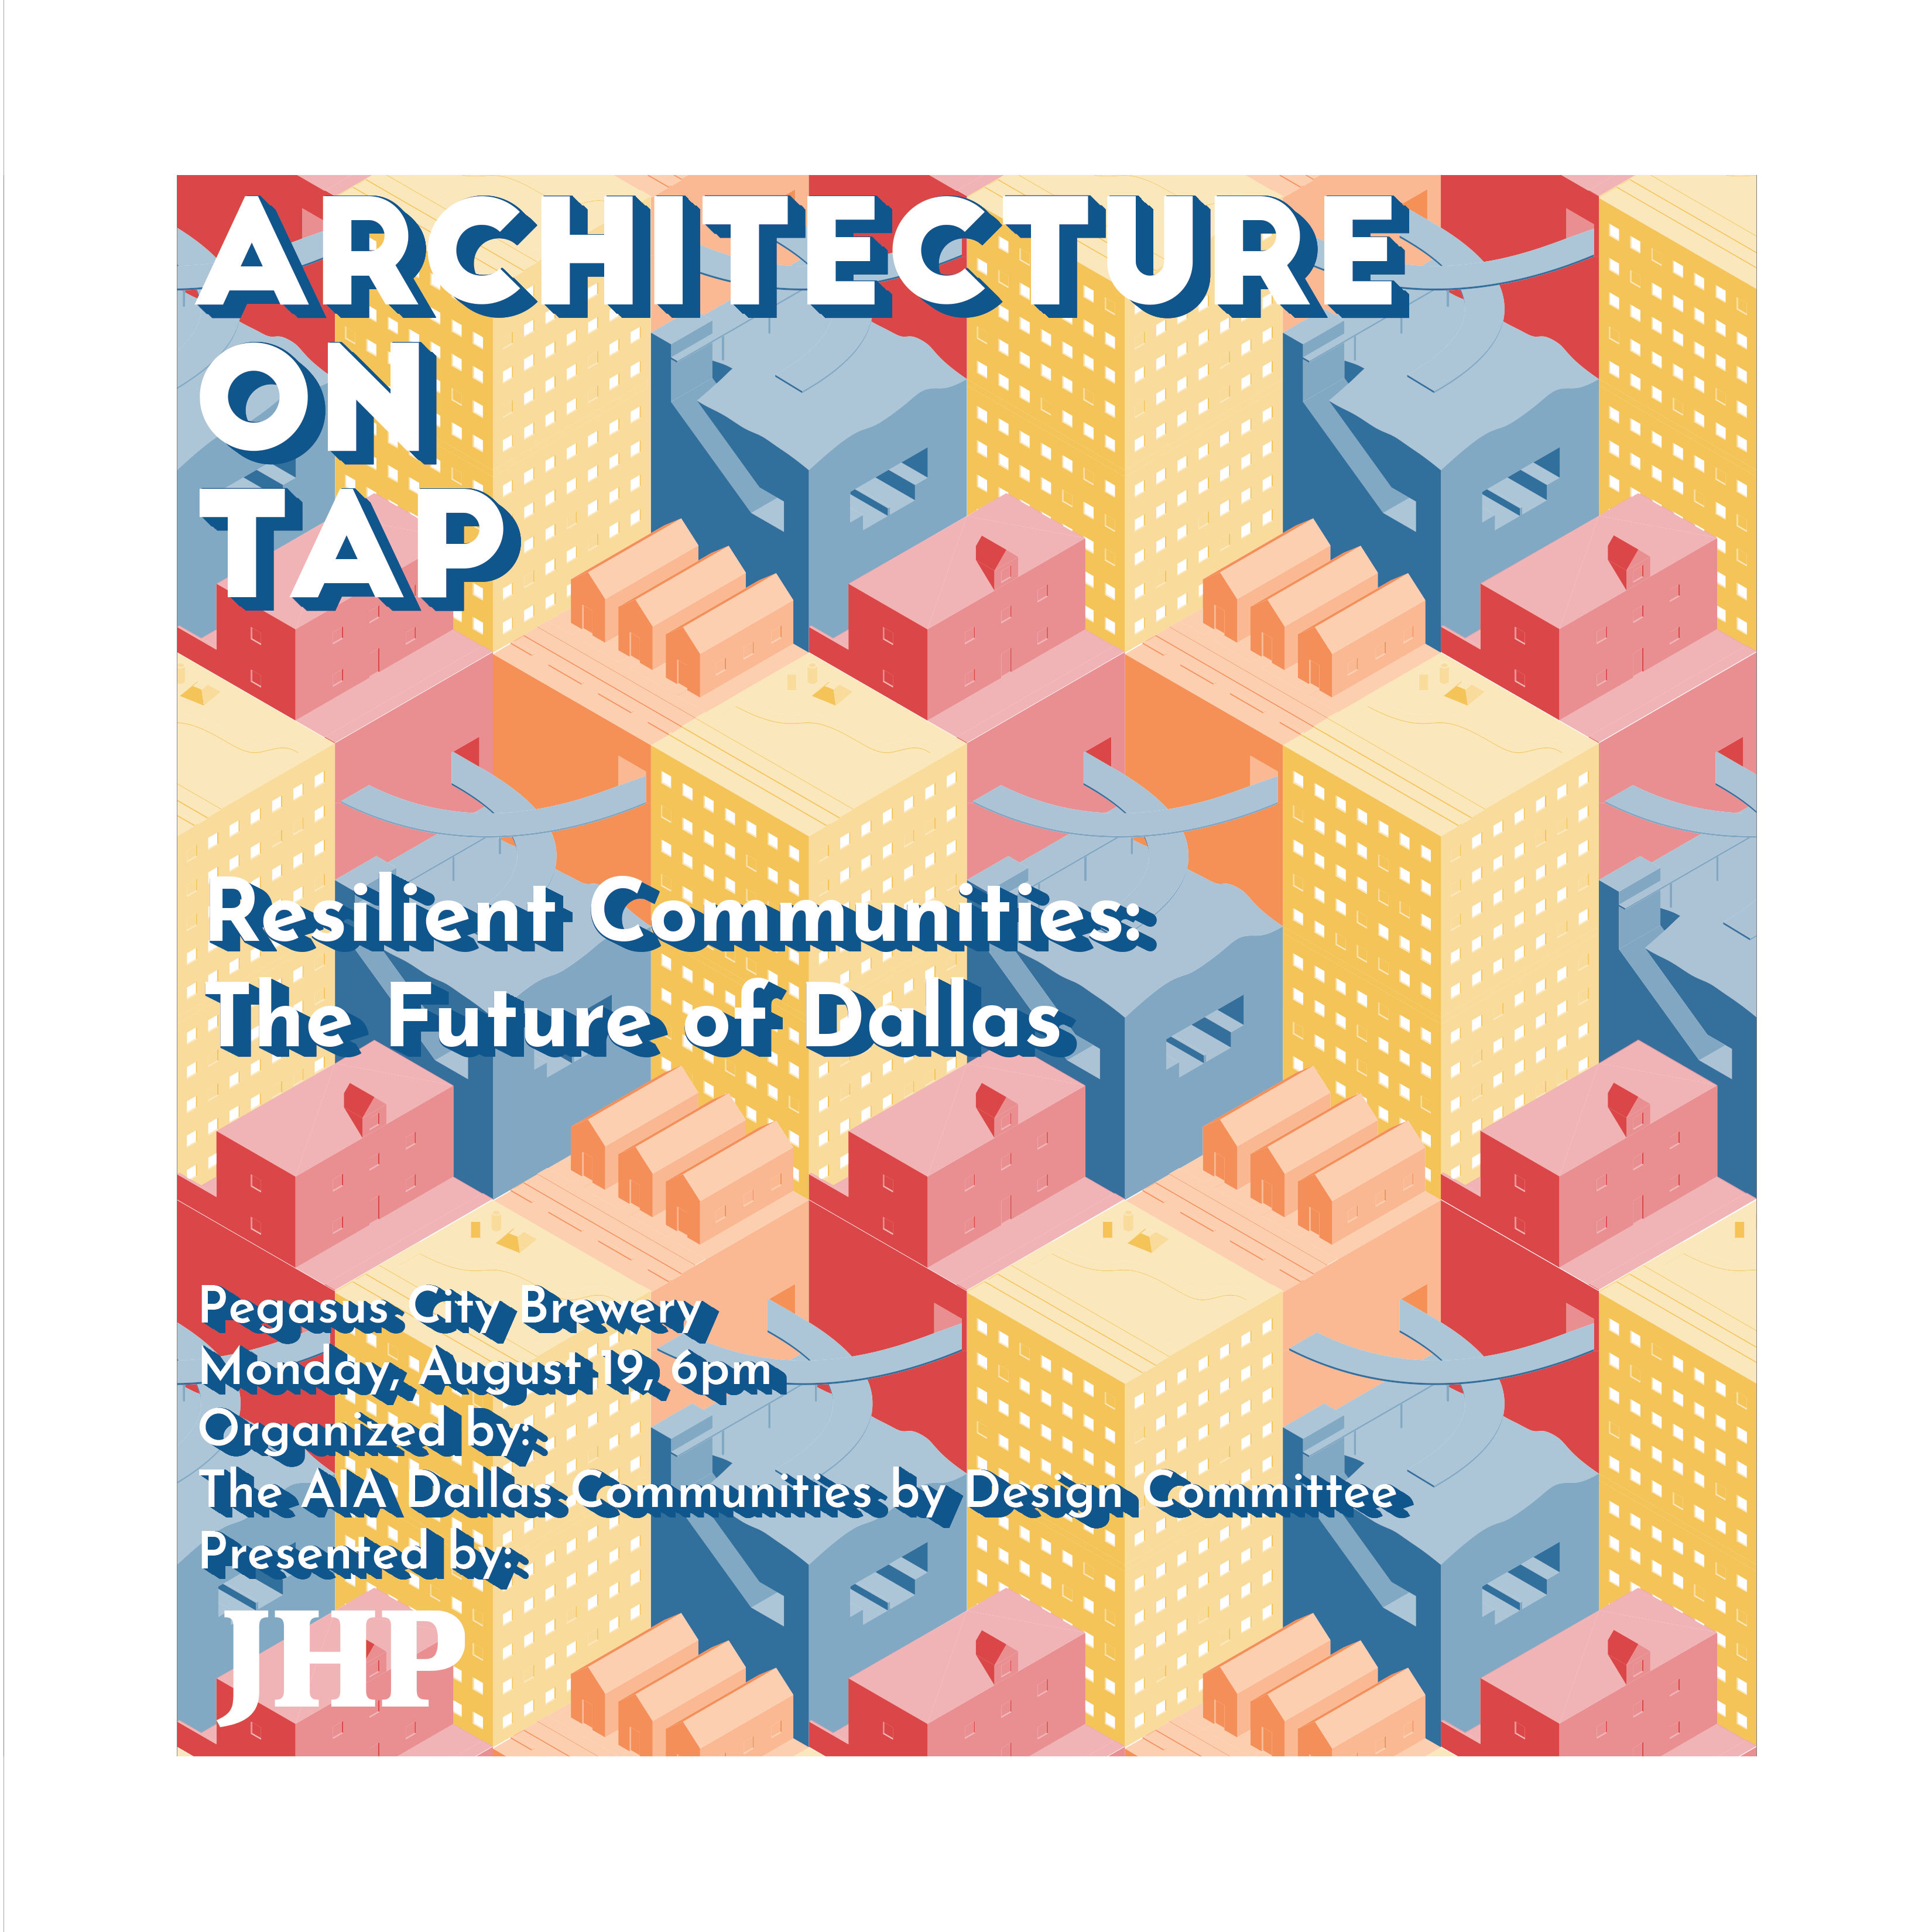 Architecture On Tap: Resilient Communities: The Future of Dallas